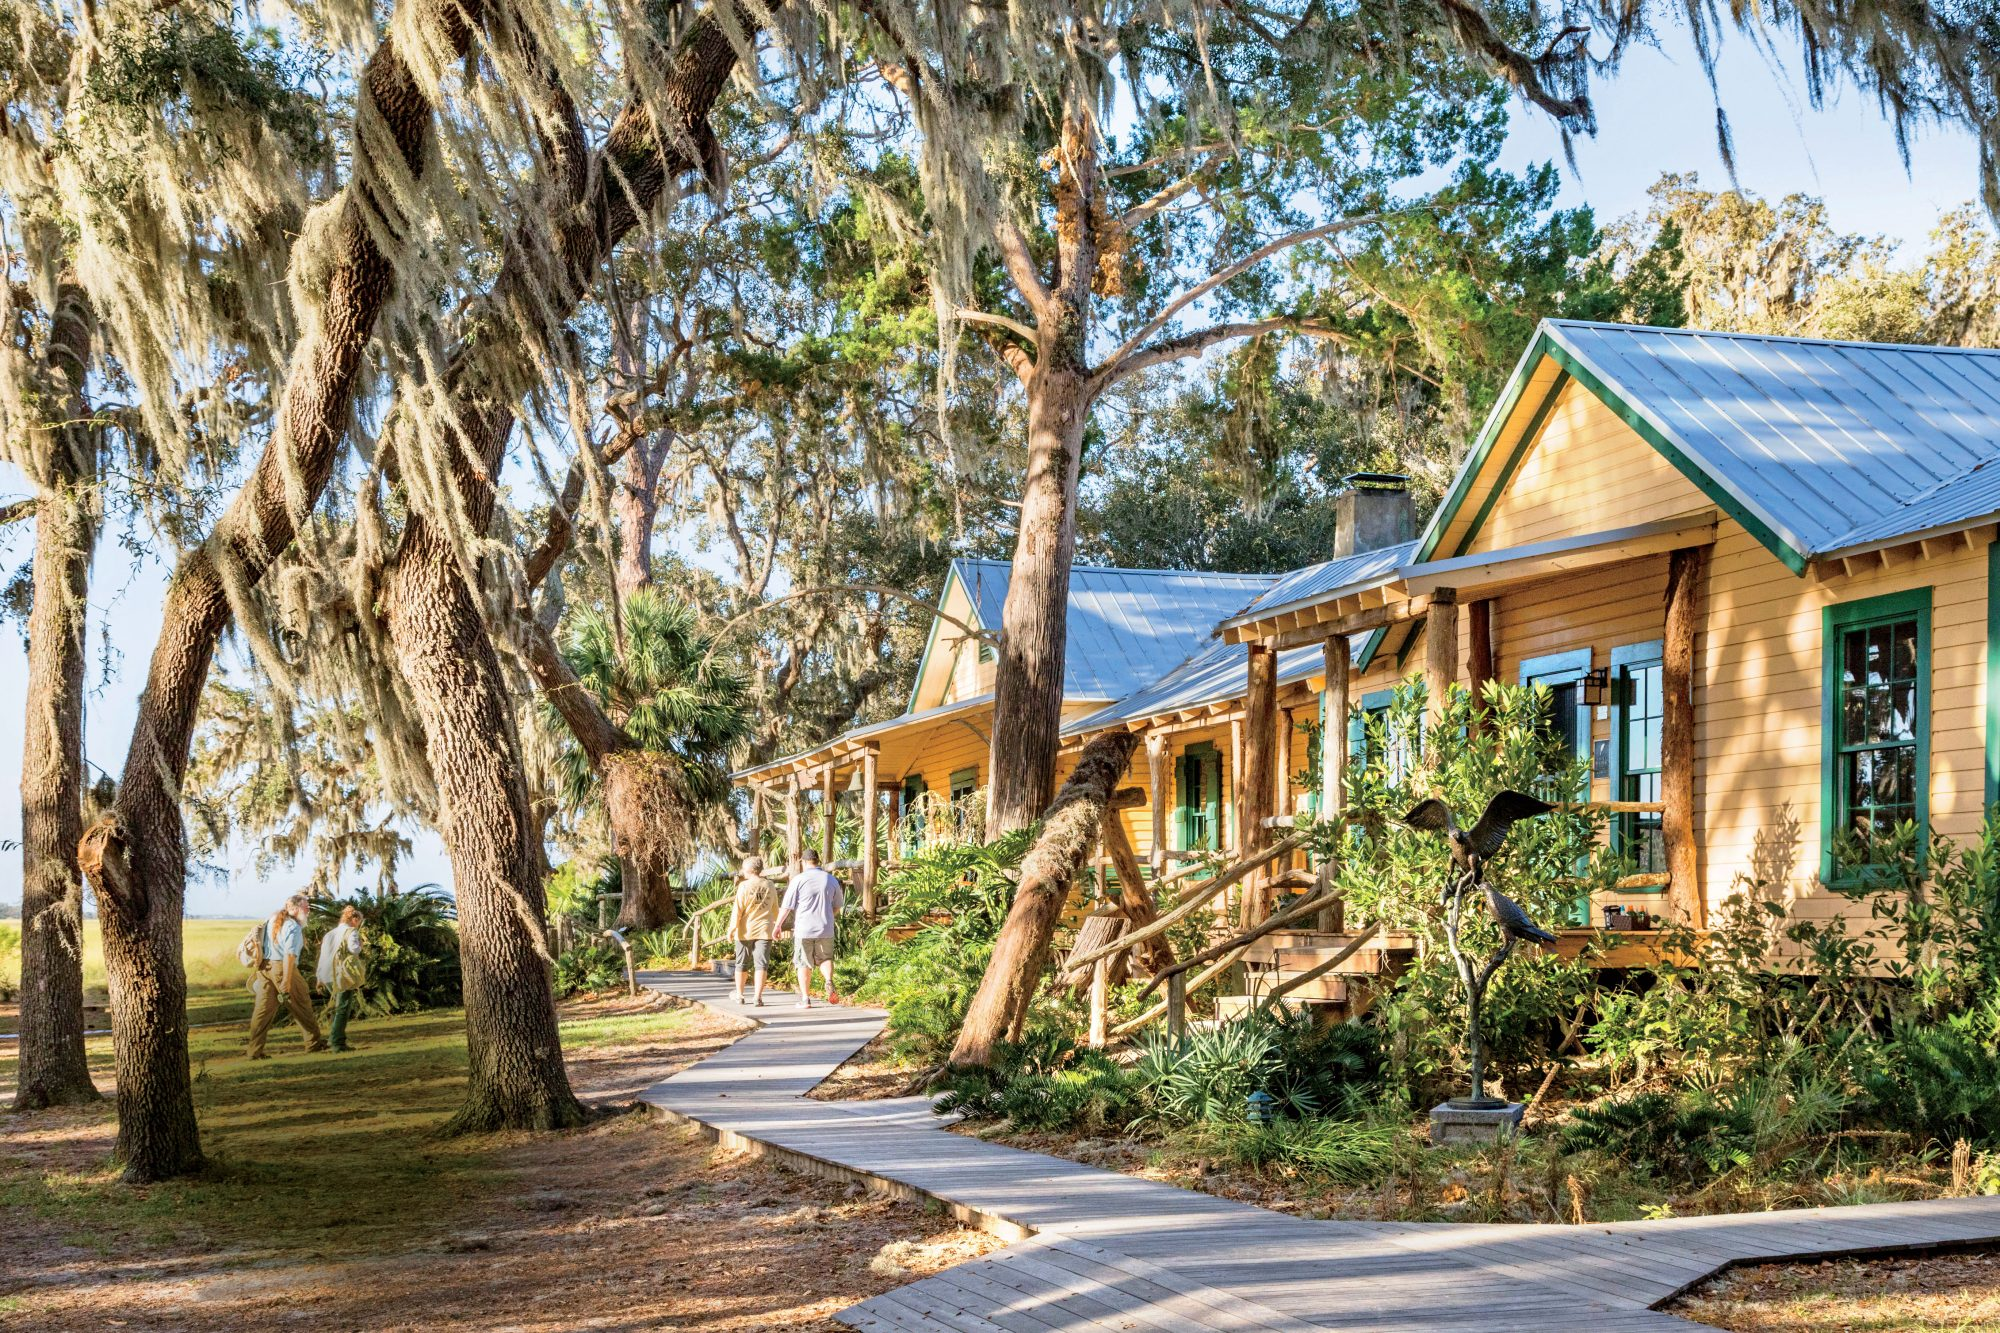 The Cottages on Little St. Simons Island